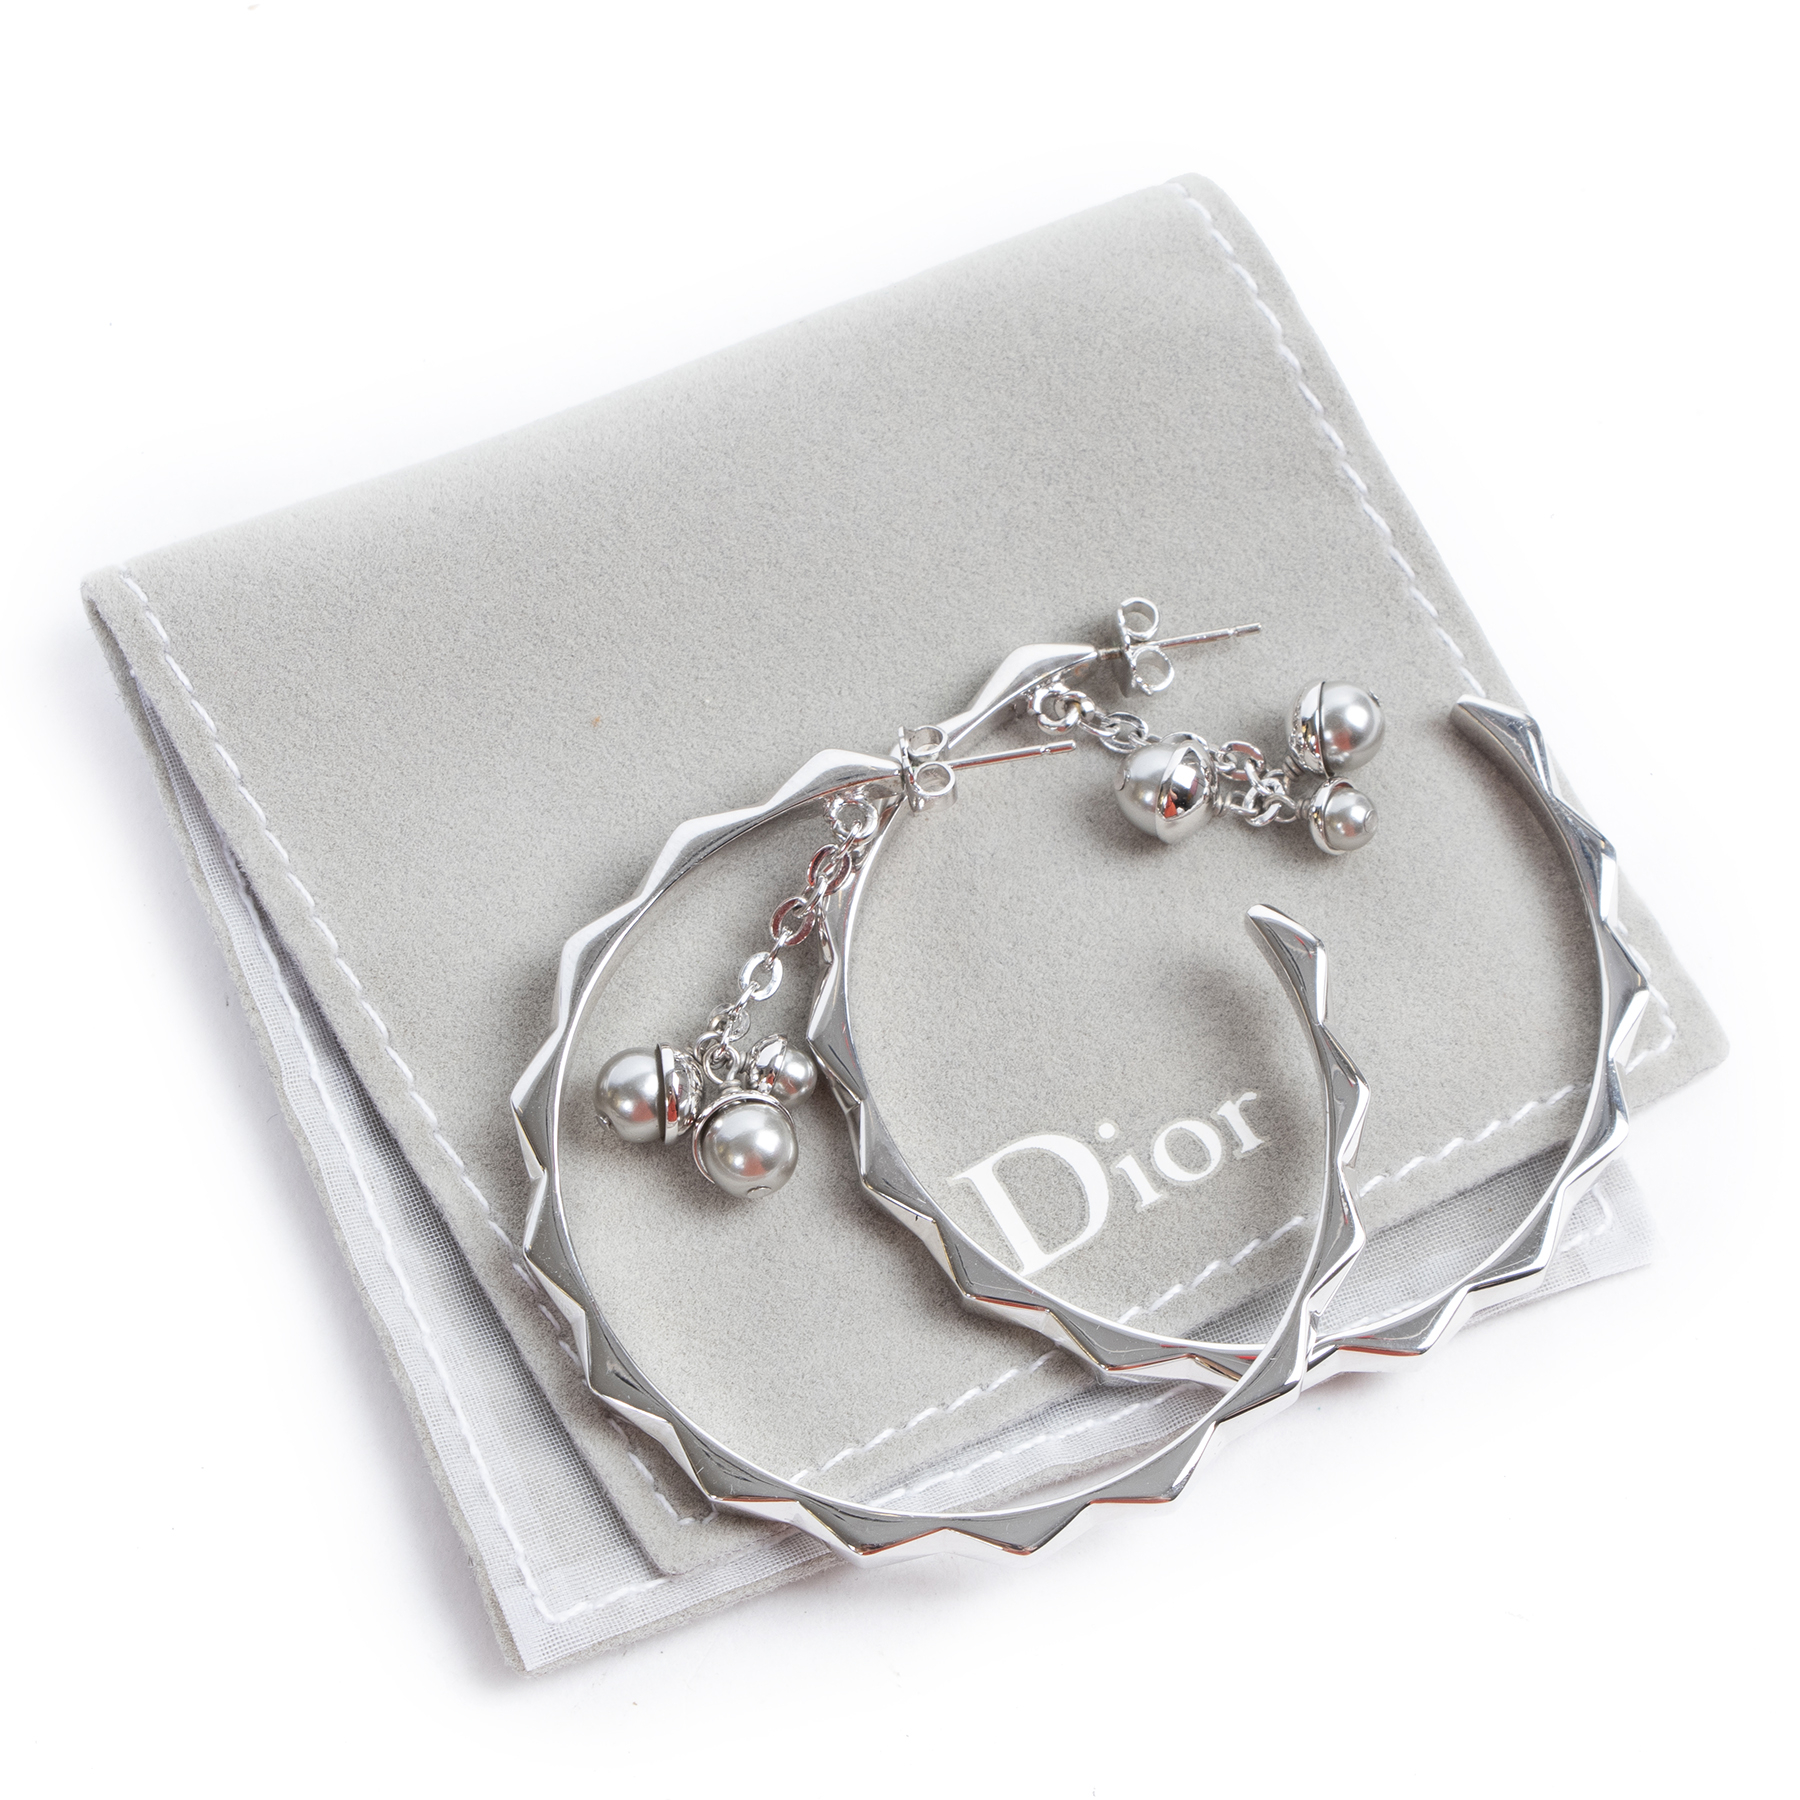 Christian Dior Silver Hoop Earrings for the best price at labellov secondhand